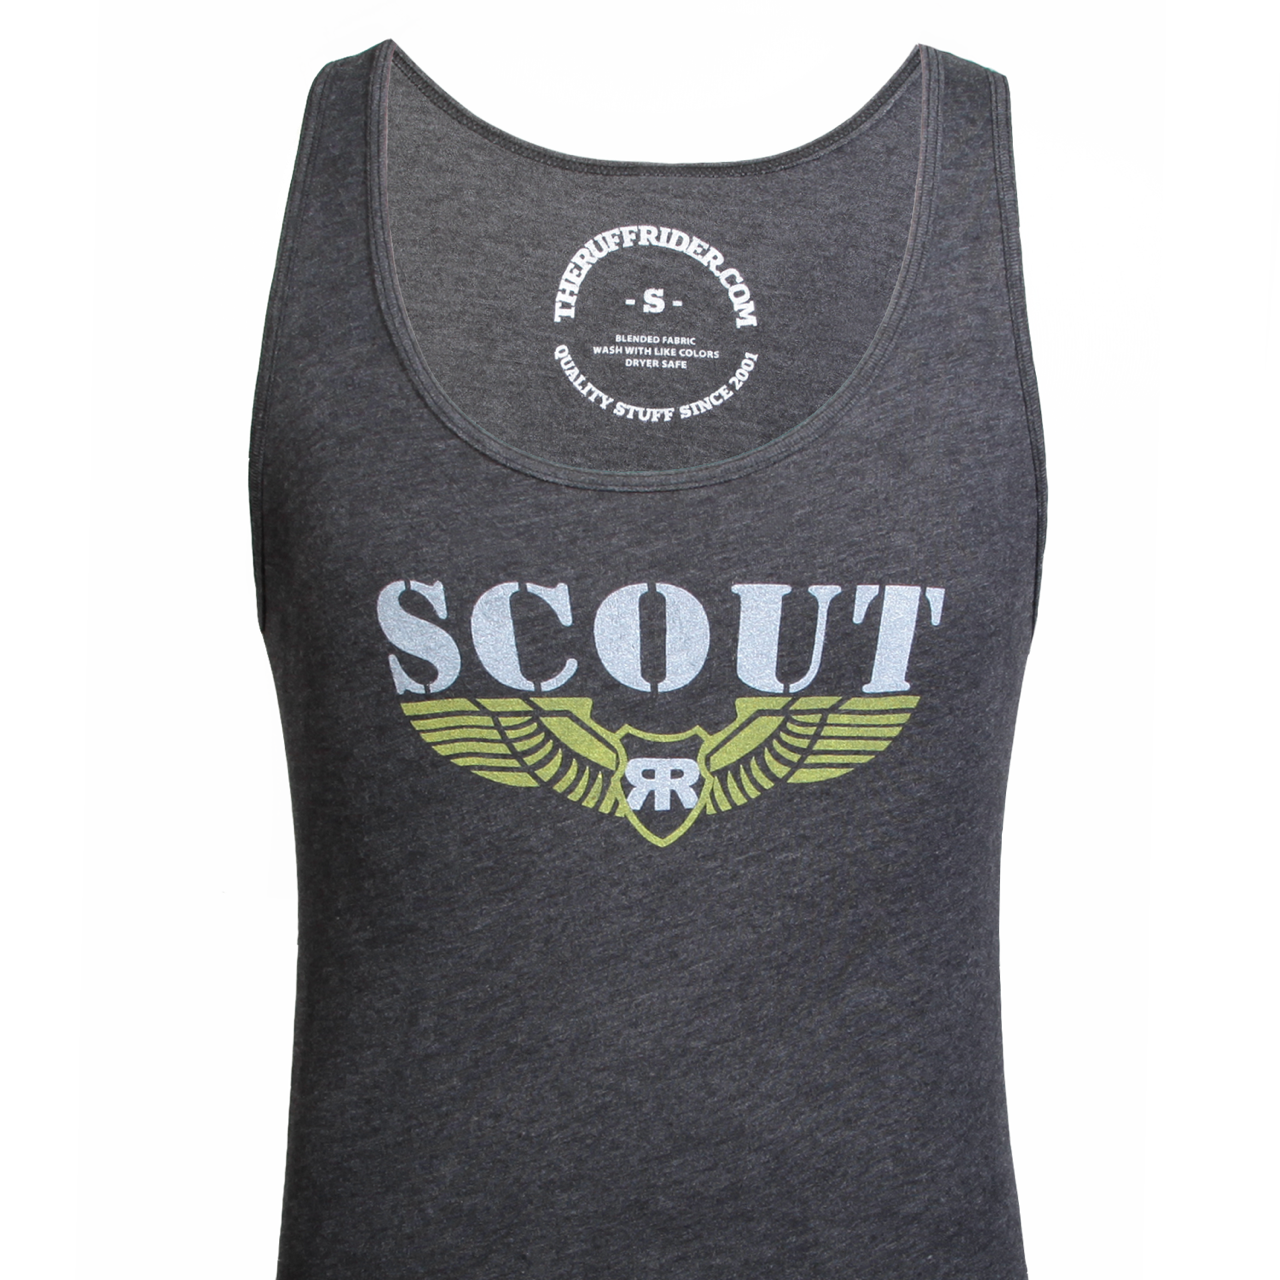 The Ruff Riders Scout Tank Top